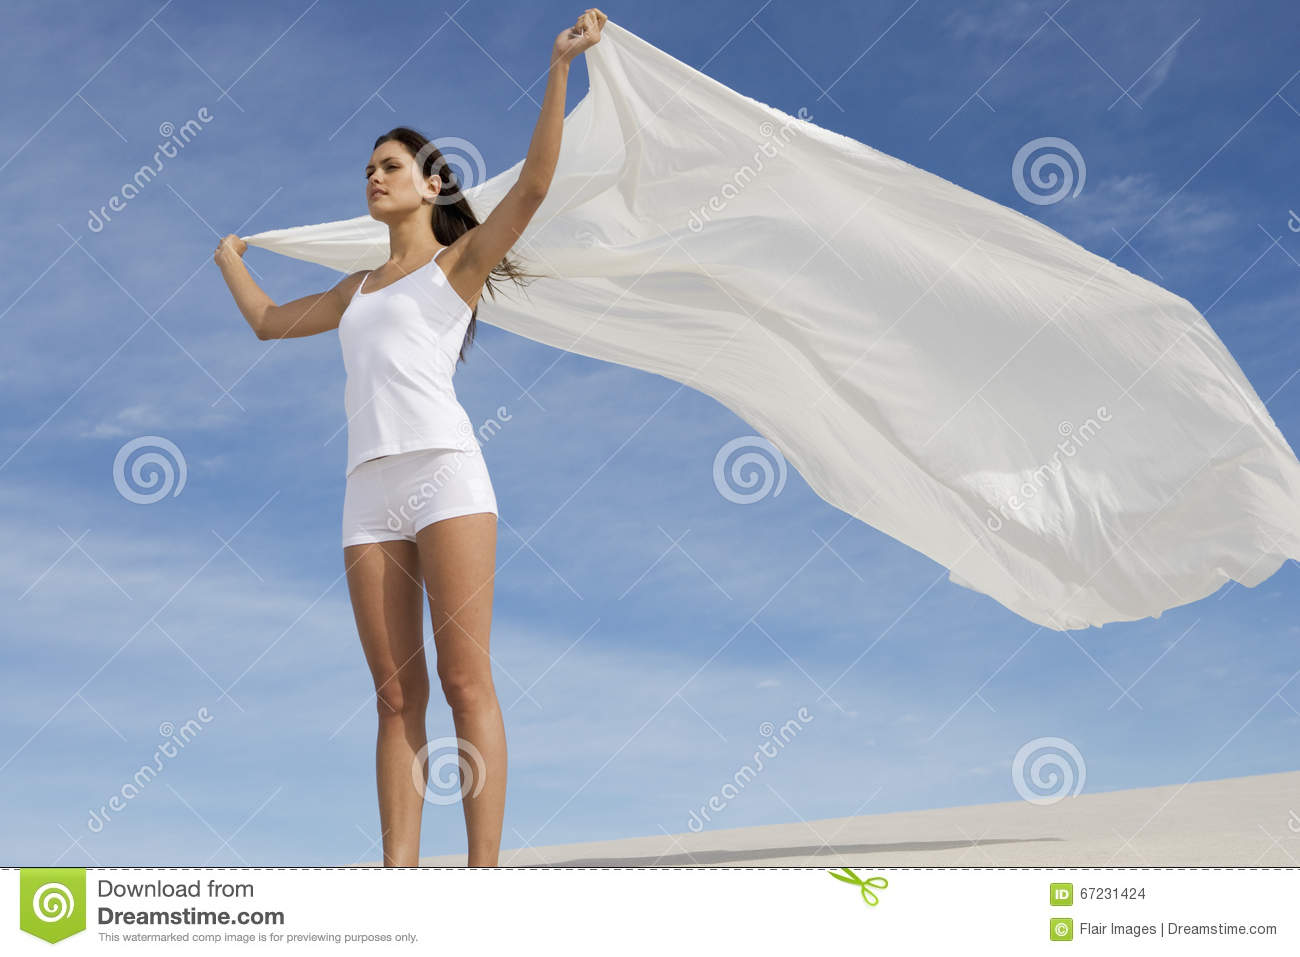 A young woman standing in the desert with a sheet